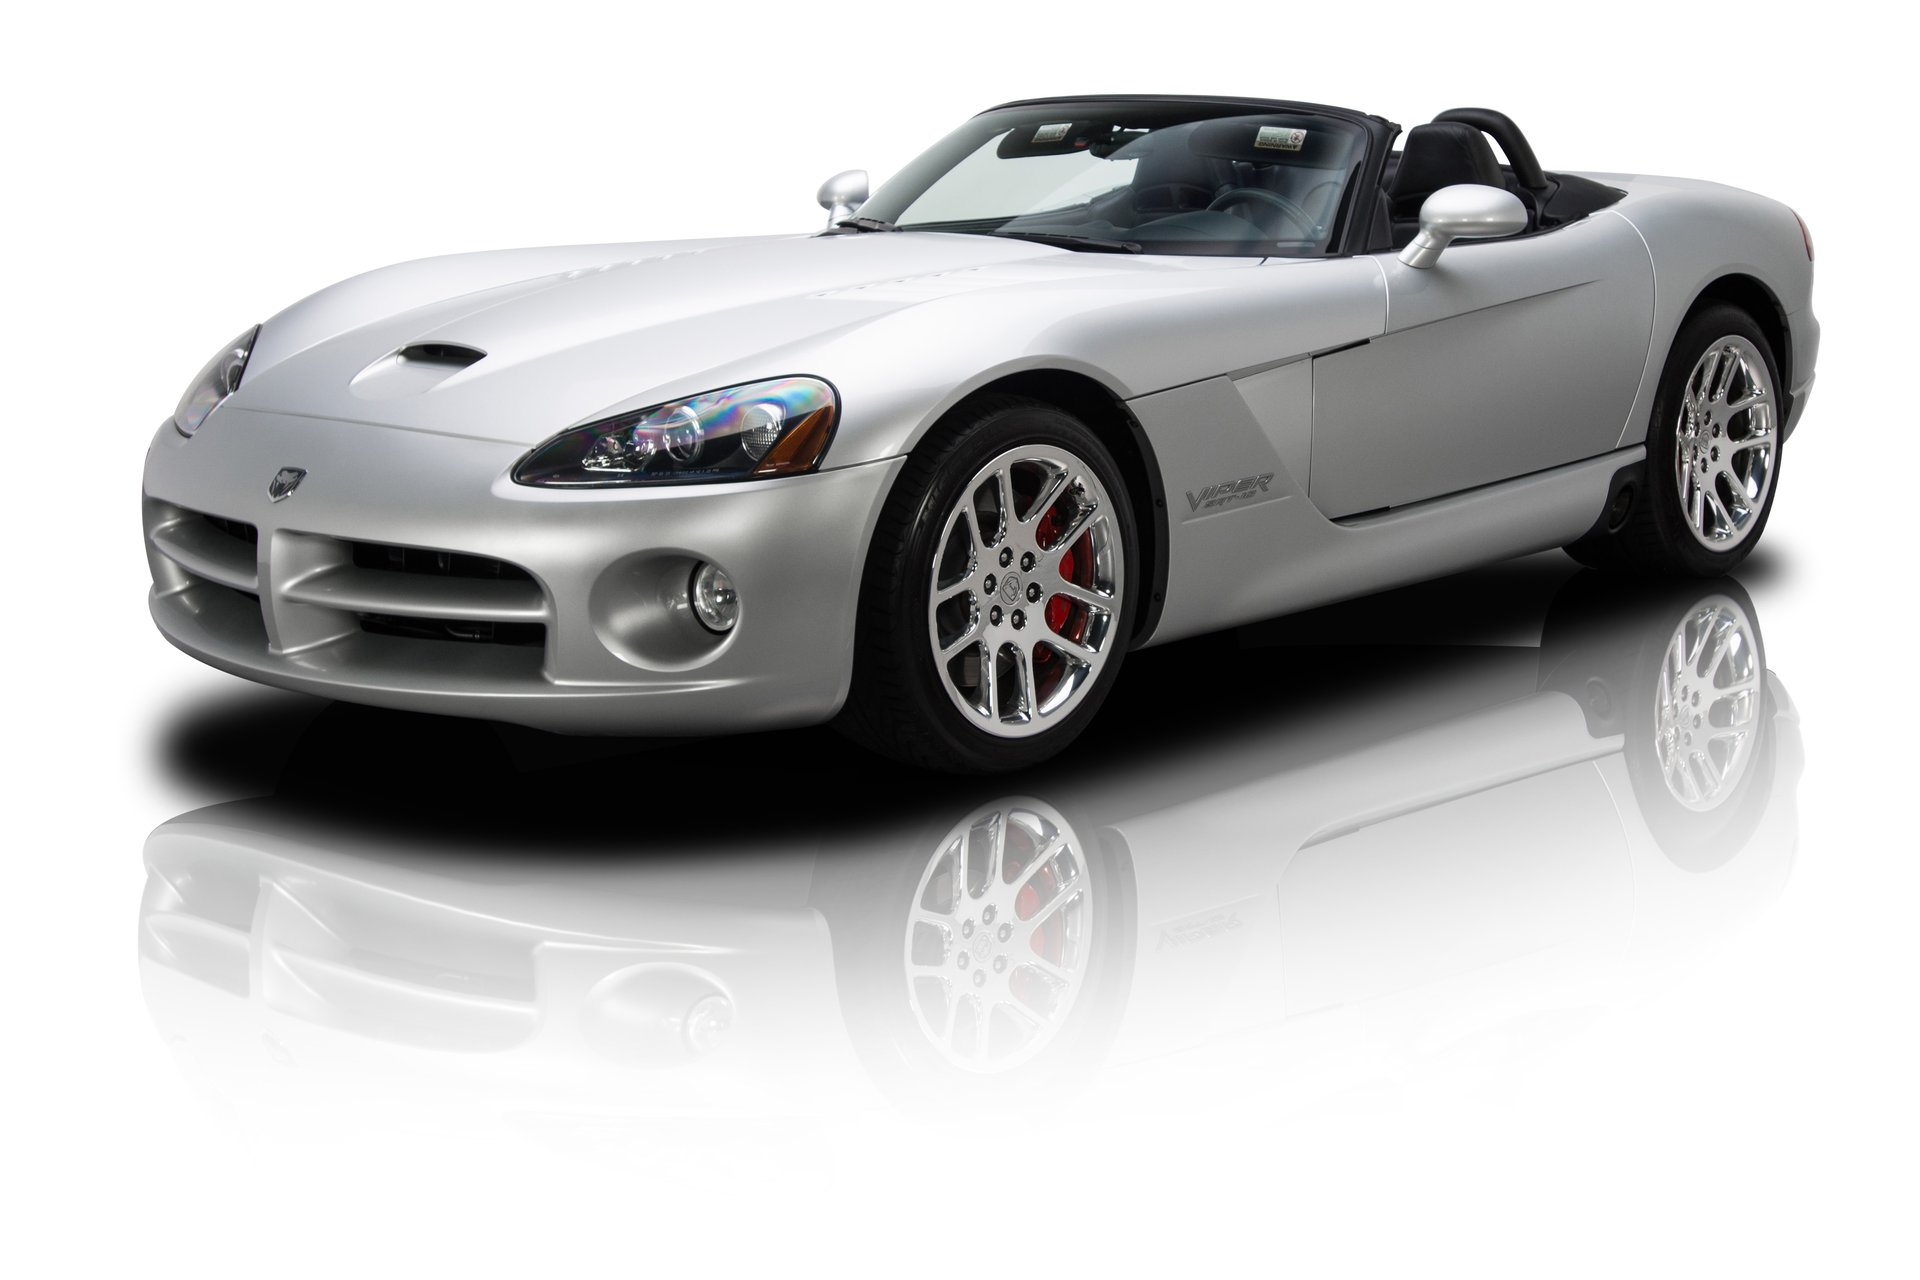 134805 2004 Dodge Viper Rk Motors Classic Cars And Muscle Cars For Sale